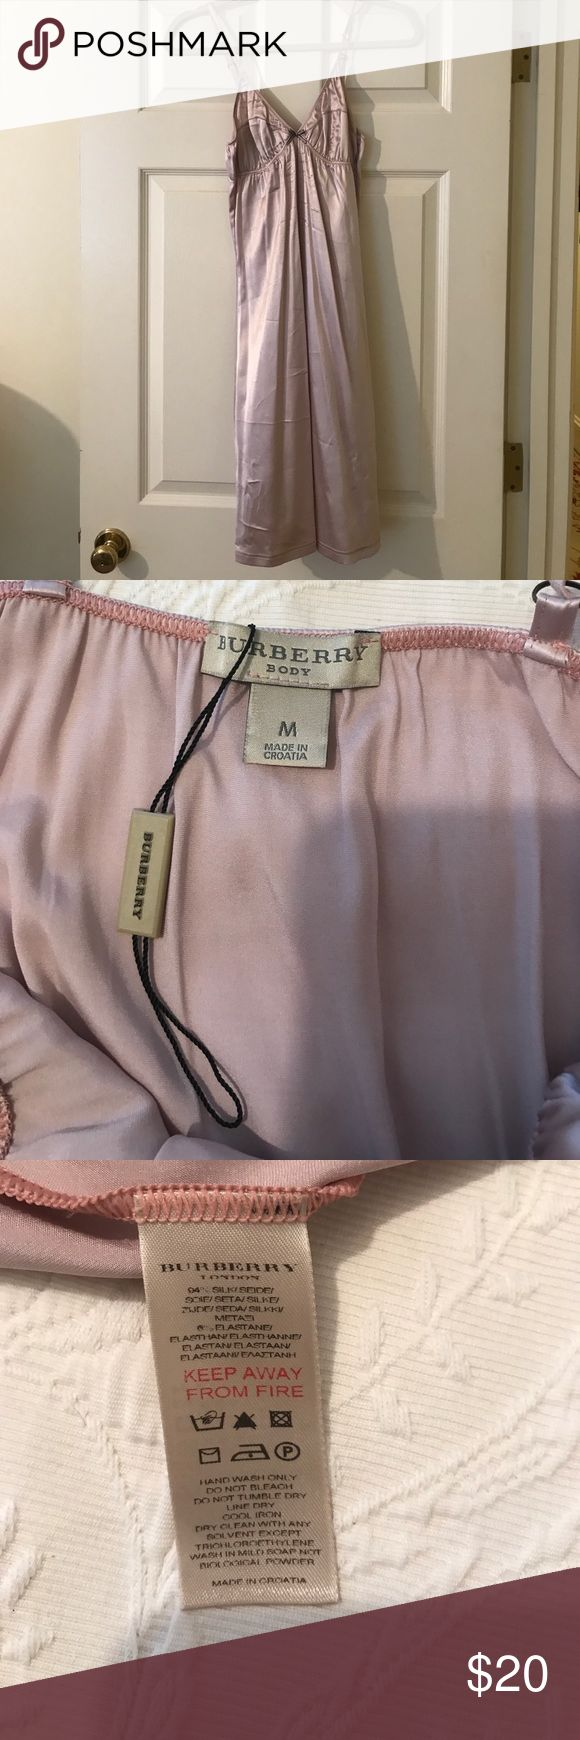 Burberry chemise nightgown. Burberry chemise nightgown.  NWT, size M (runs ver small, so I could not wear it).  Nude/blush color.  Short length Burberry Intimates & Sleepwear Chemises & Slips